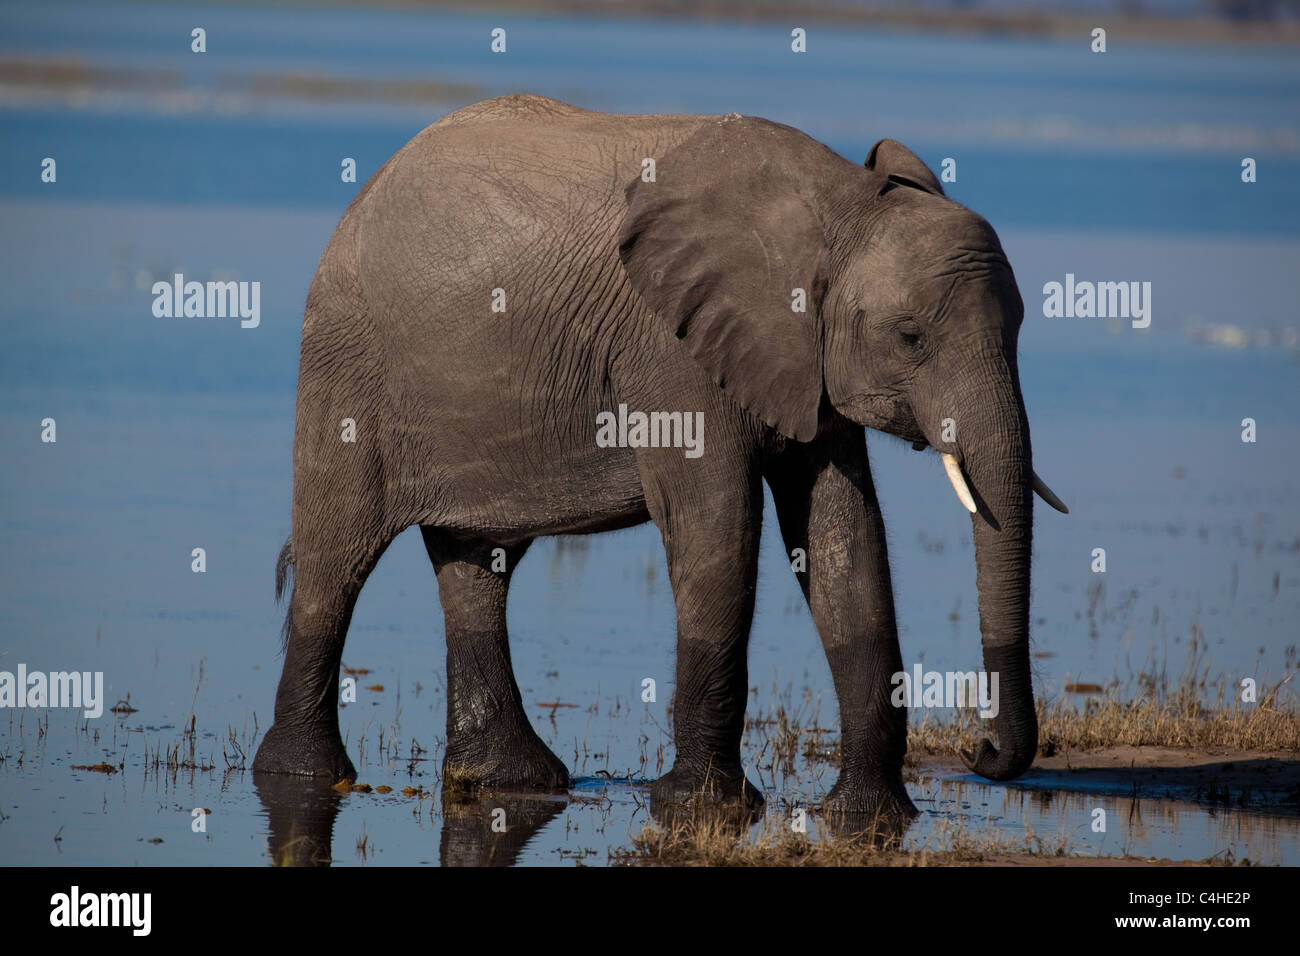 Young Elephant (Loxodonta Africana) In Chobe National Park, Botswana - Stock Image